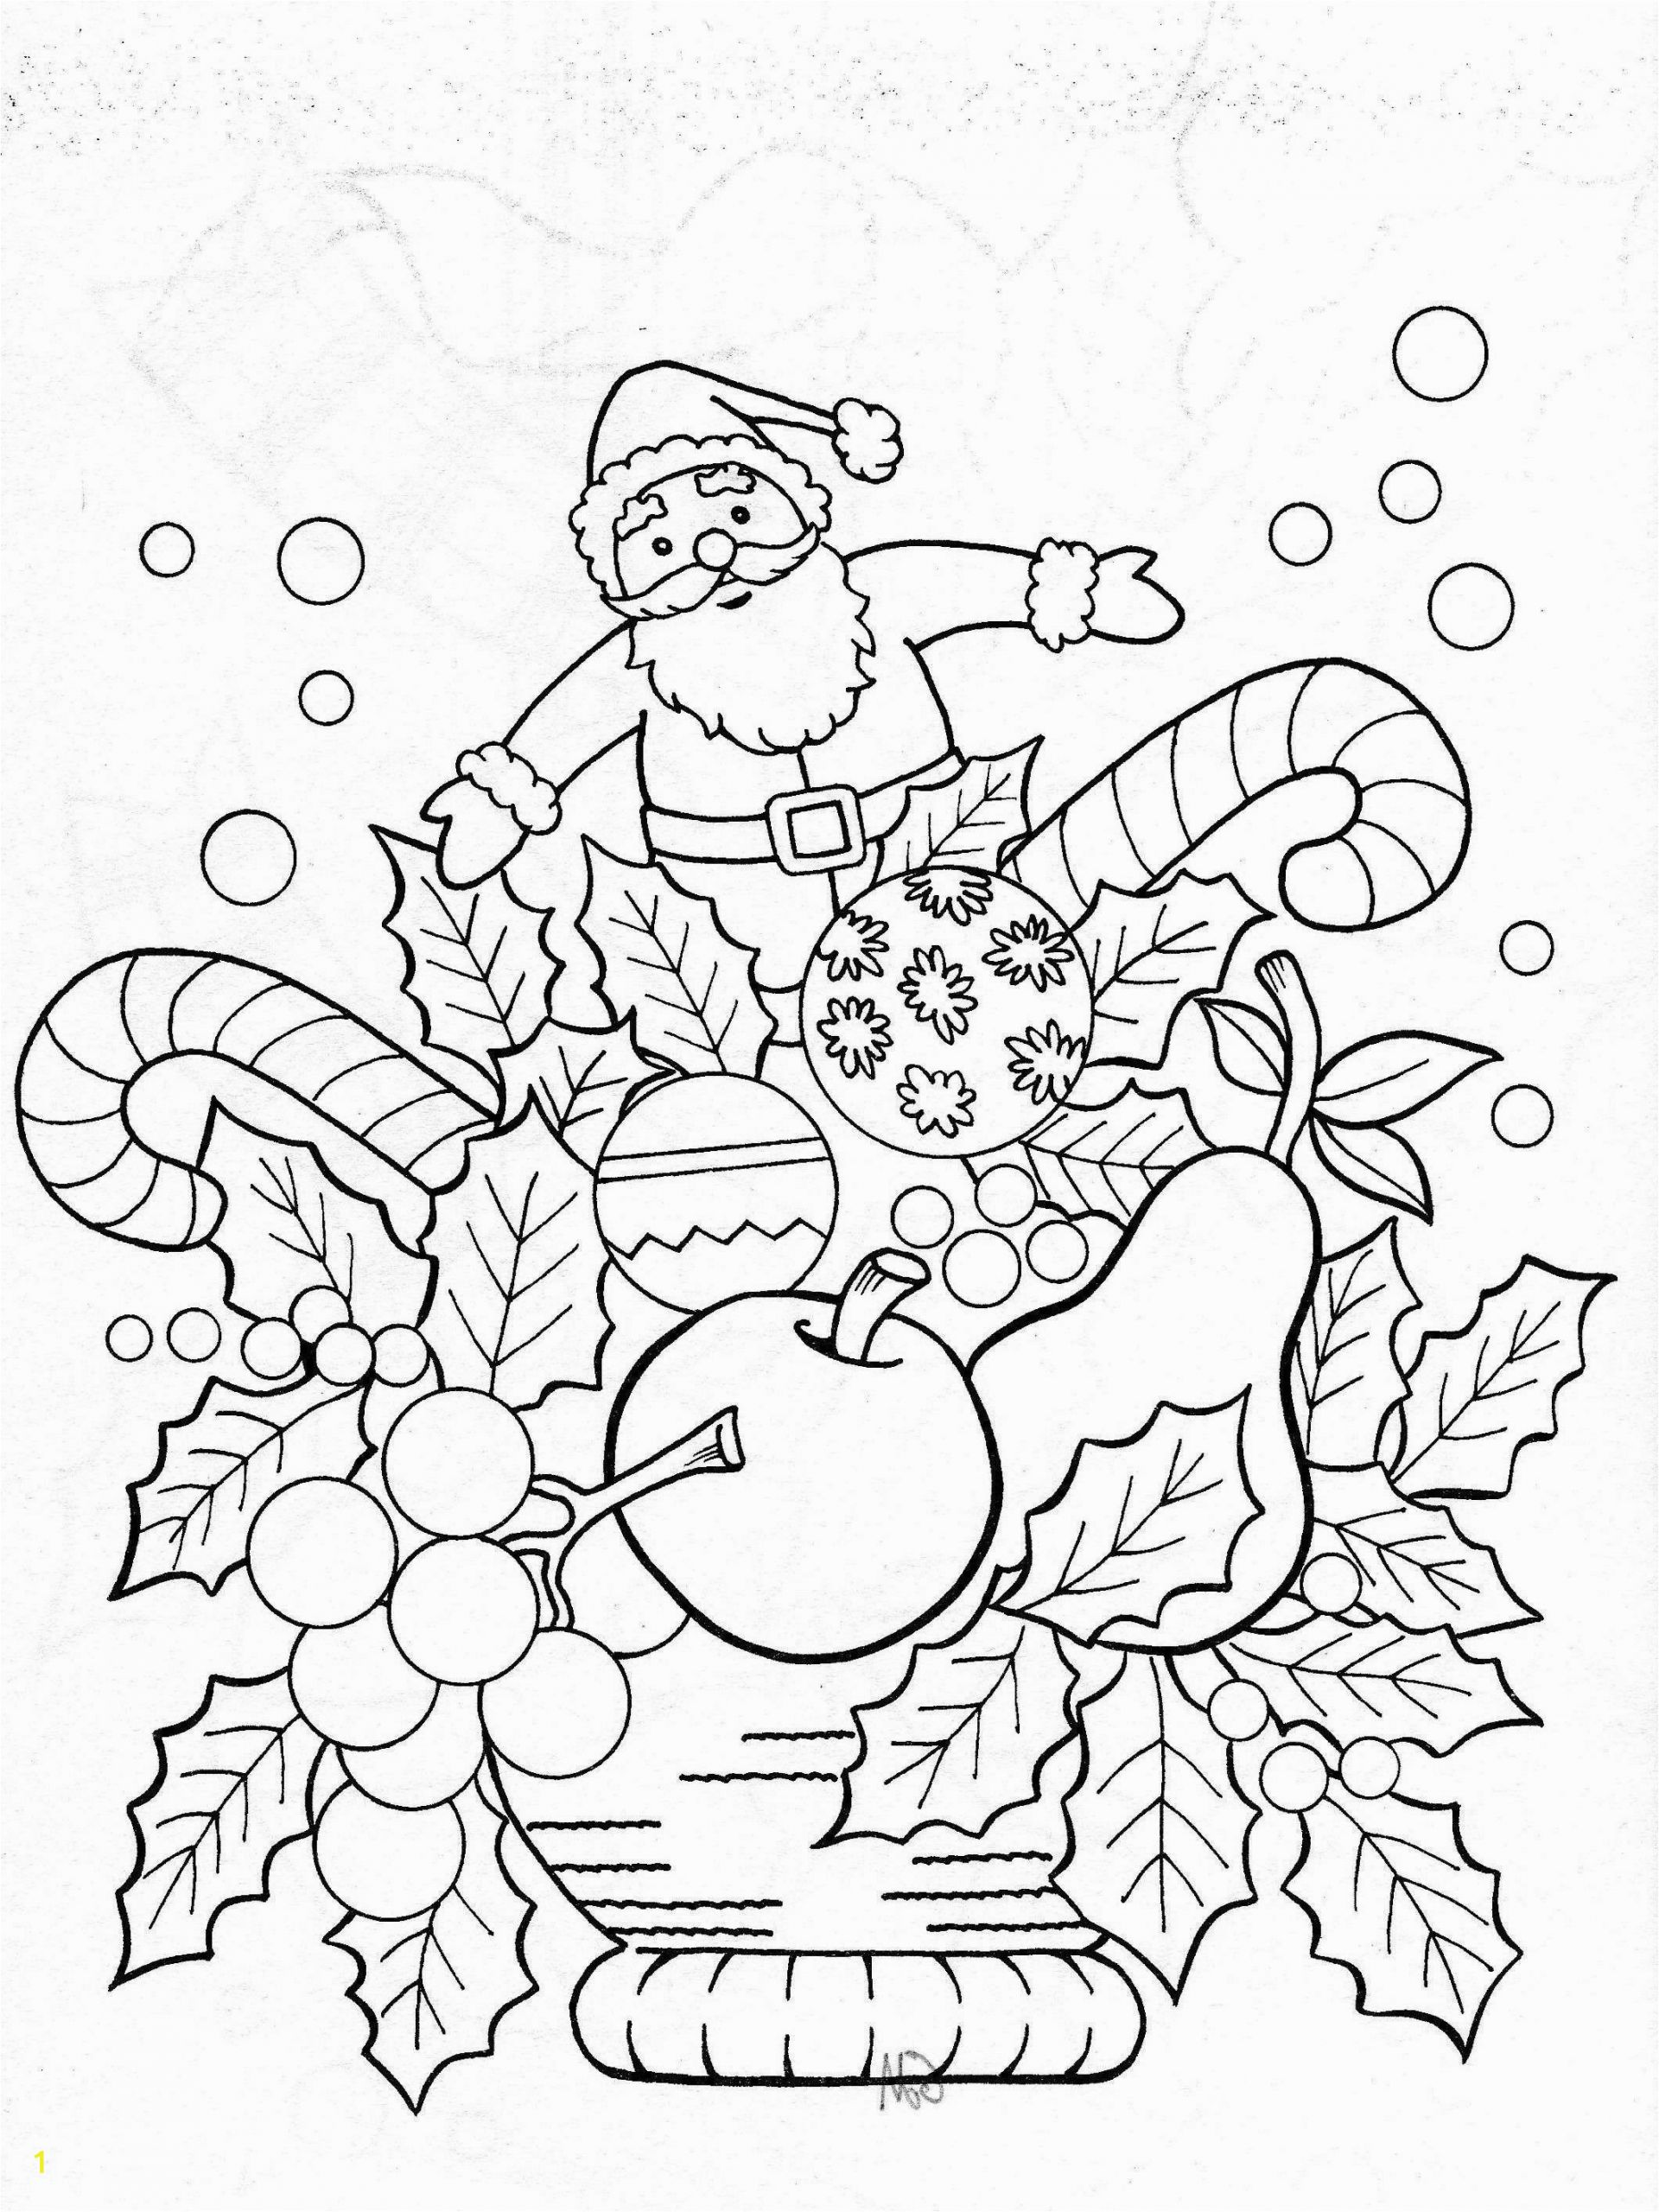 Cool Coloring Pages for Boys Christmas Coloring Pages for Printable New Cool Coloring